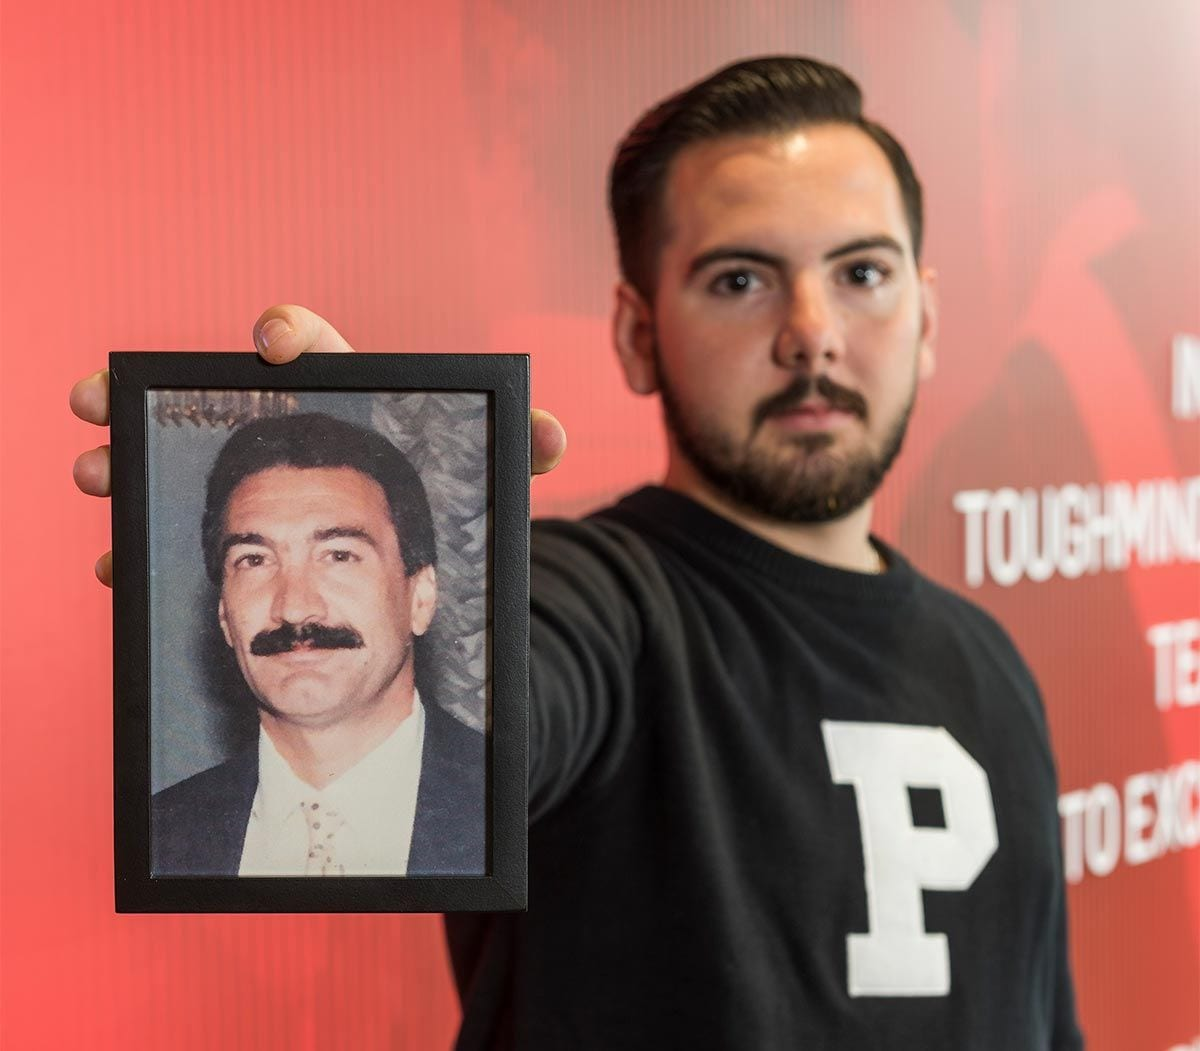 Joseph Padavano '17 holds a photo of his father, Louis, who died in 2011. Padavano and Everett Gabriel '71 & '77G both lost their fathers while in high school.